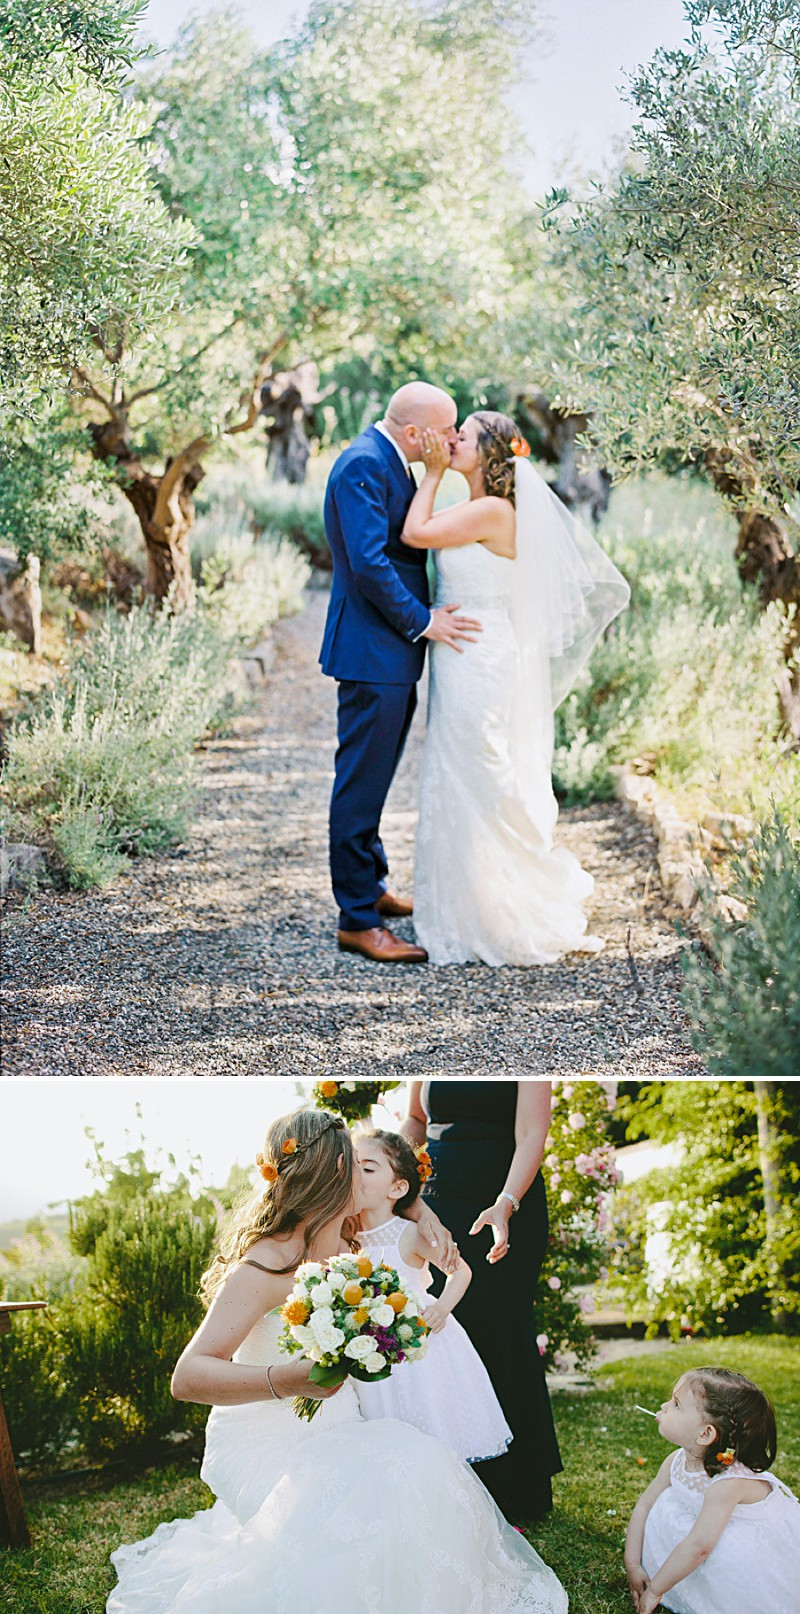 Destination Wedding In Gaucin In Spain With An Orange And Navy Colour Scheme And A La Sposa Wedding Dress With Photography By David Jenkins._0008